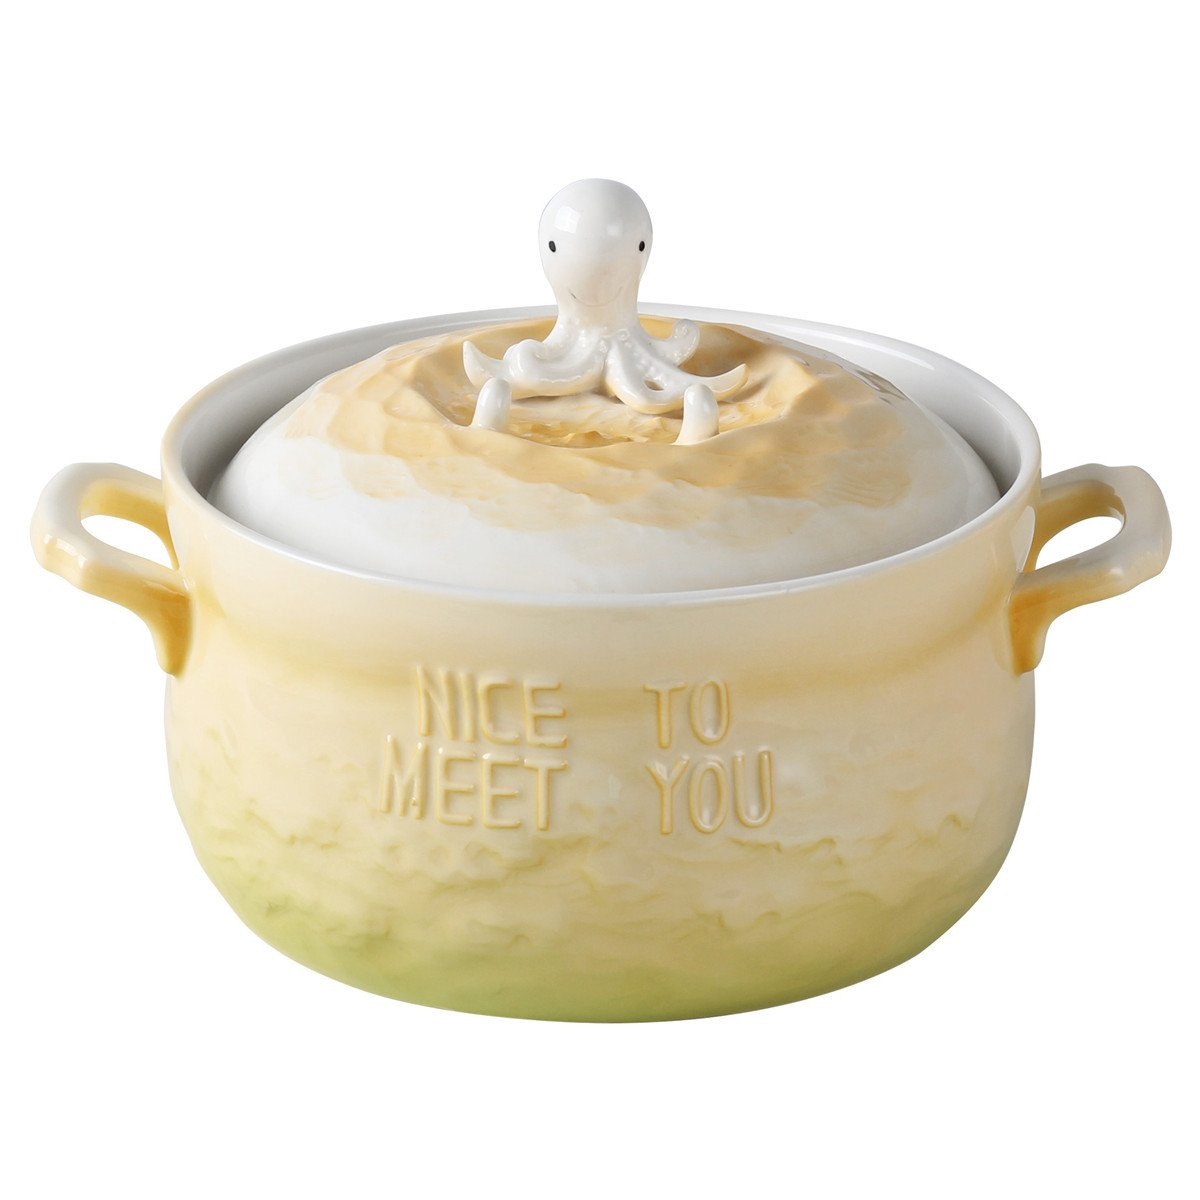 UPSTYLE Microwave Oven Ceramic Soup Bowls 3D Cute Ocean Animal Yellow Octopus Instant Noodle Bowl Cereal Serving Pot/Casserole for Salad Fruit with Lid and handle,29oz (Yellow Octopus)